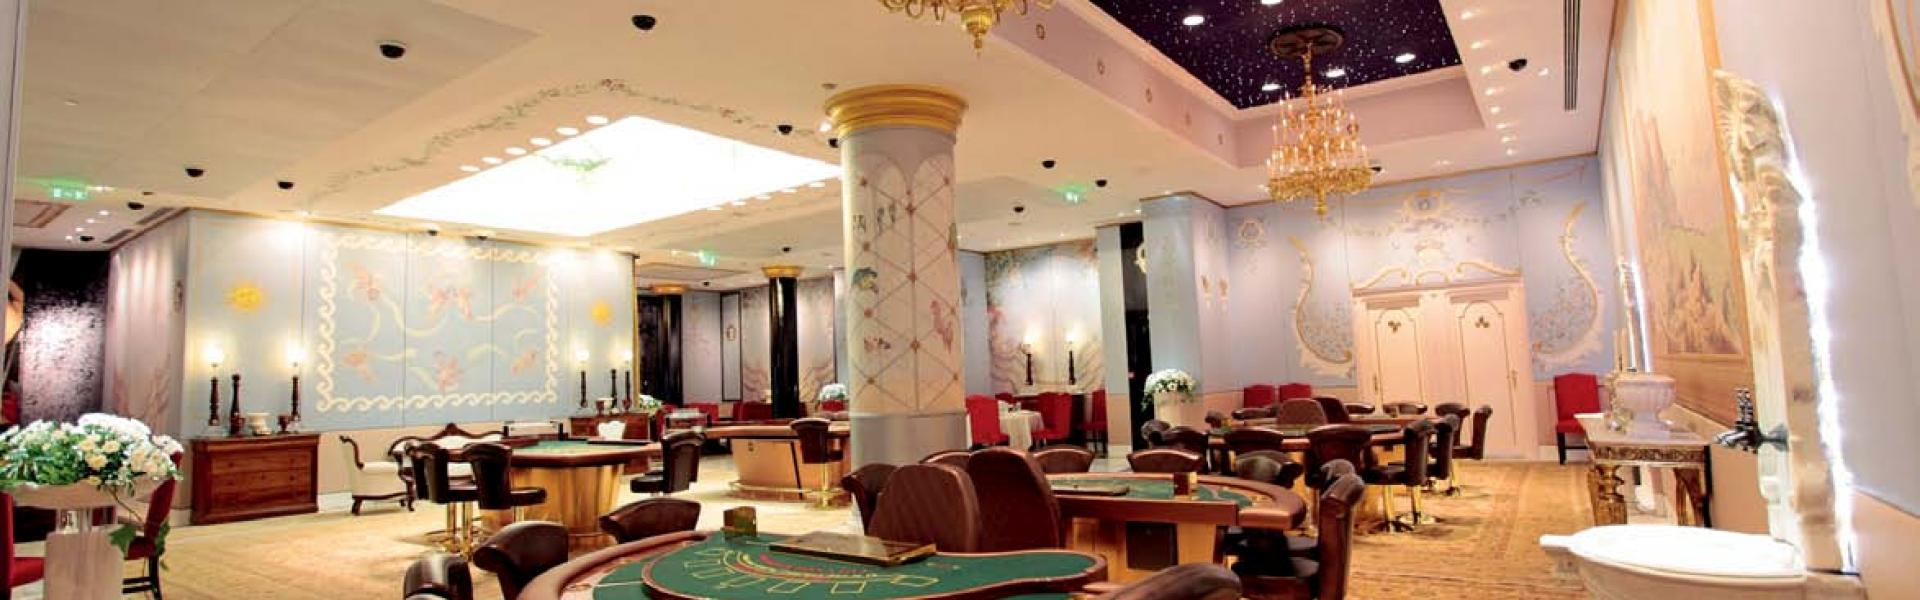 Club Hotel Casino Loutraki room